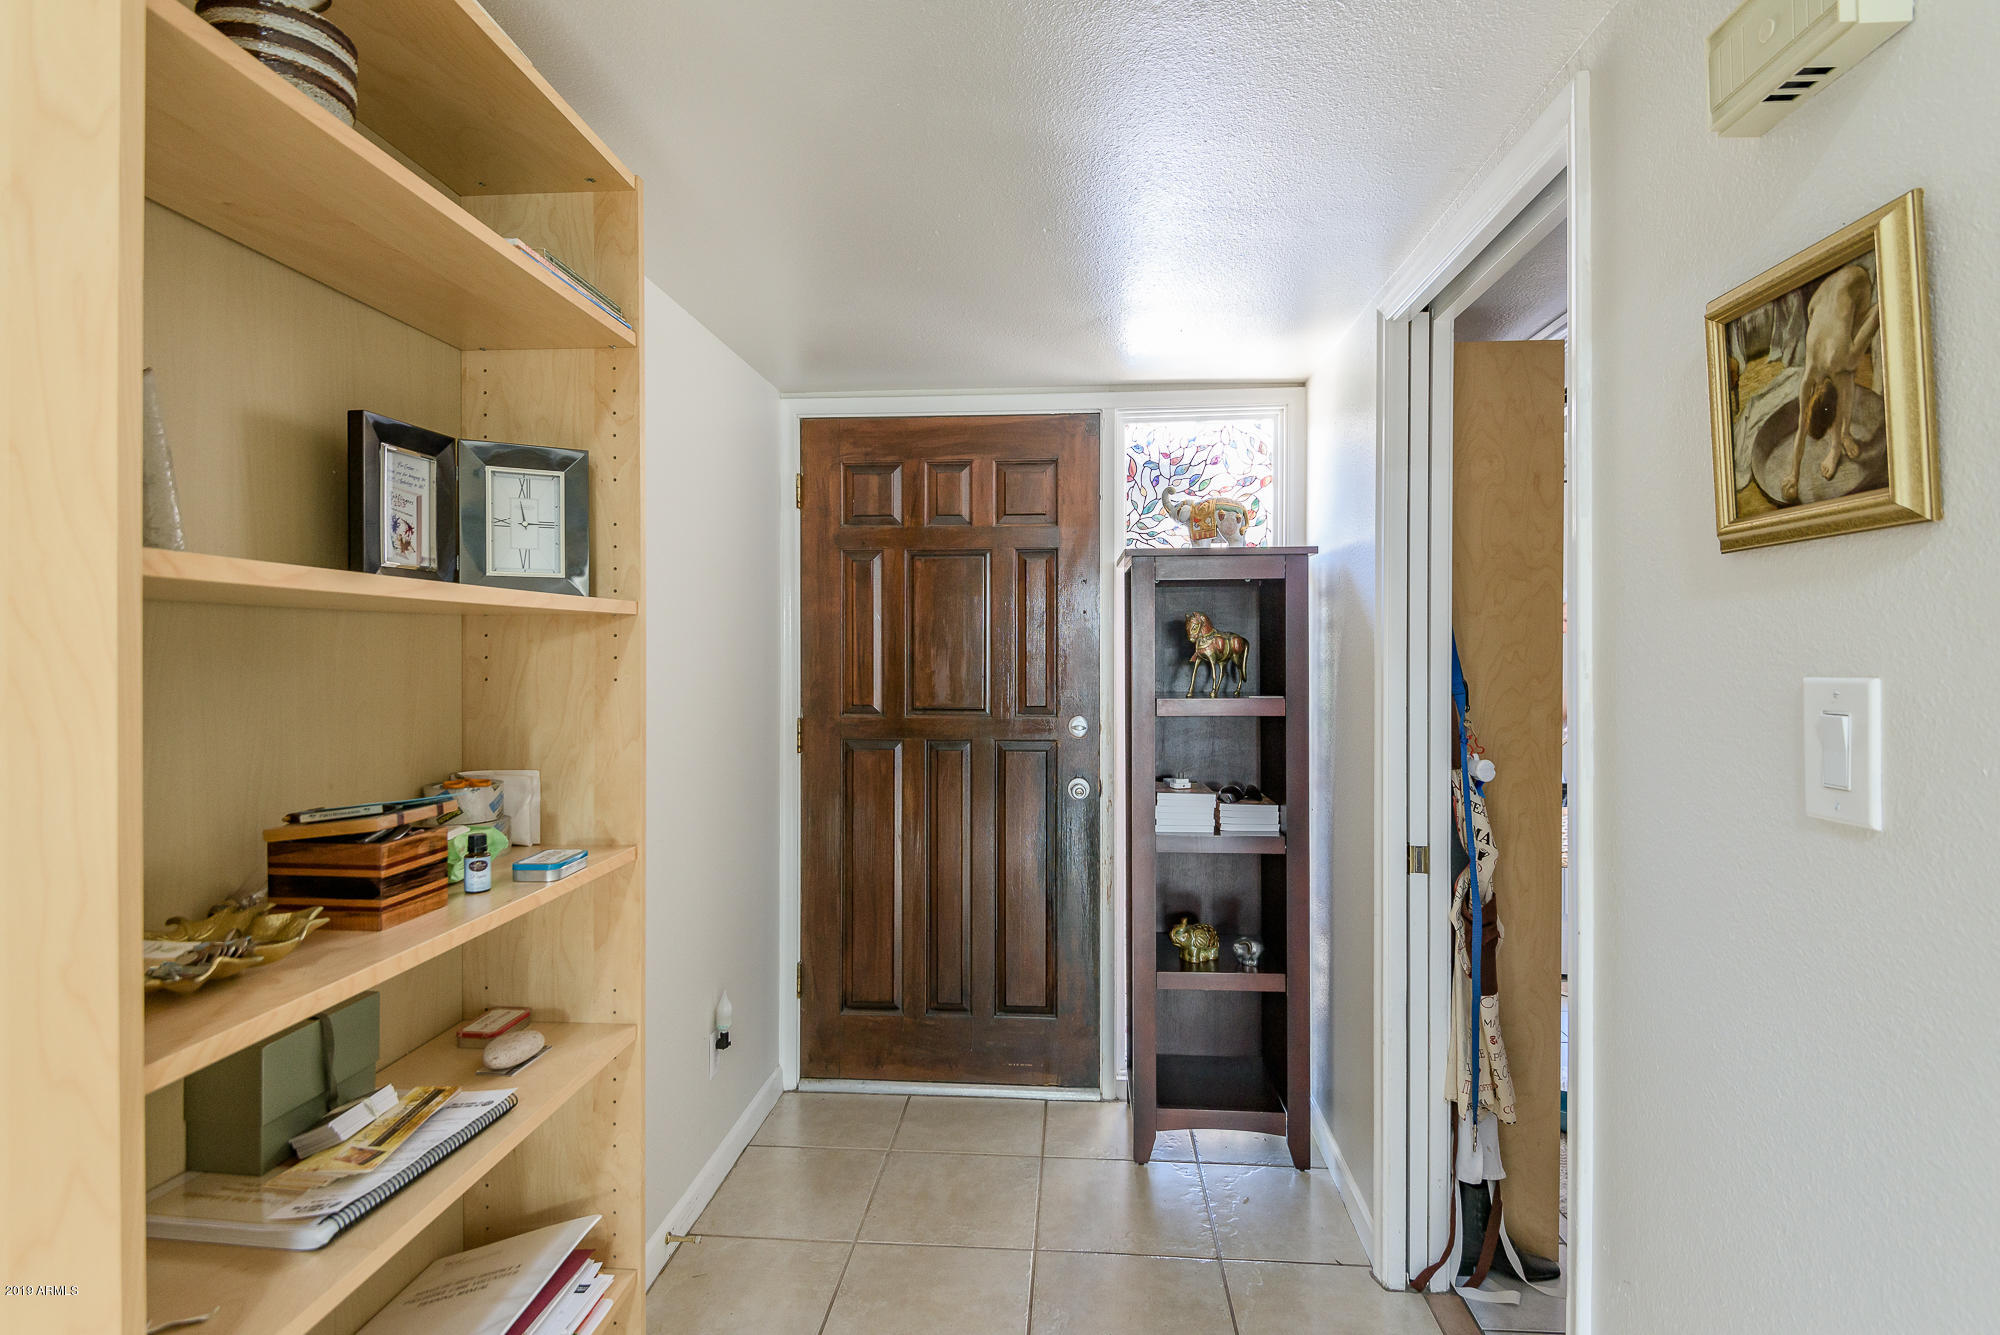 5 W CASA HERMOSA Drive, one of homes for sale in North Mountain-Phoenix